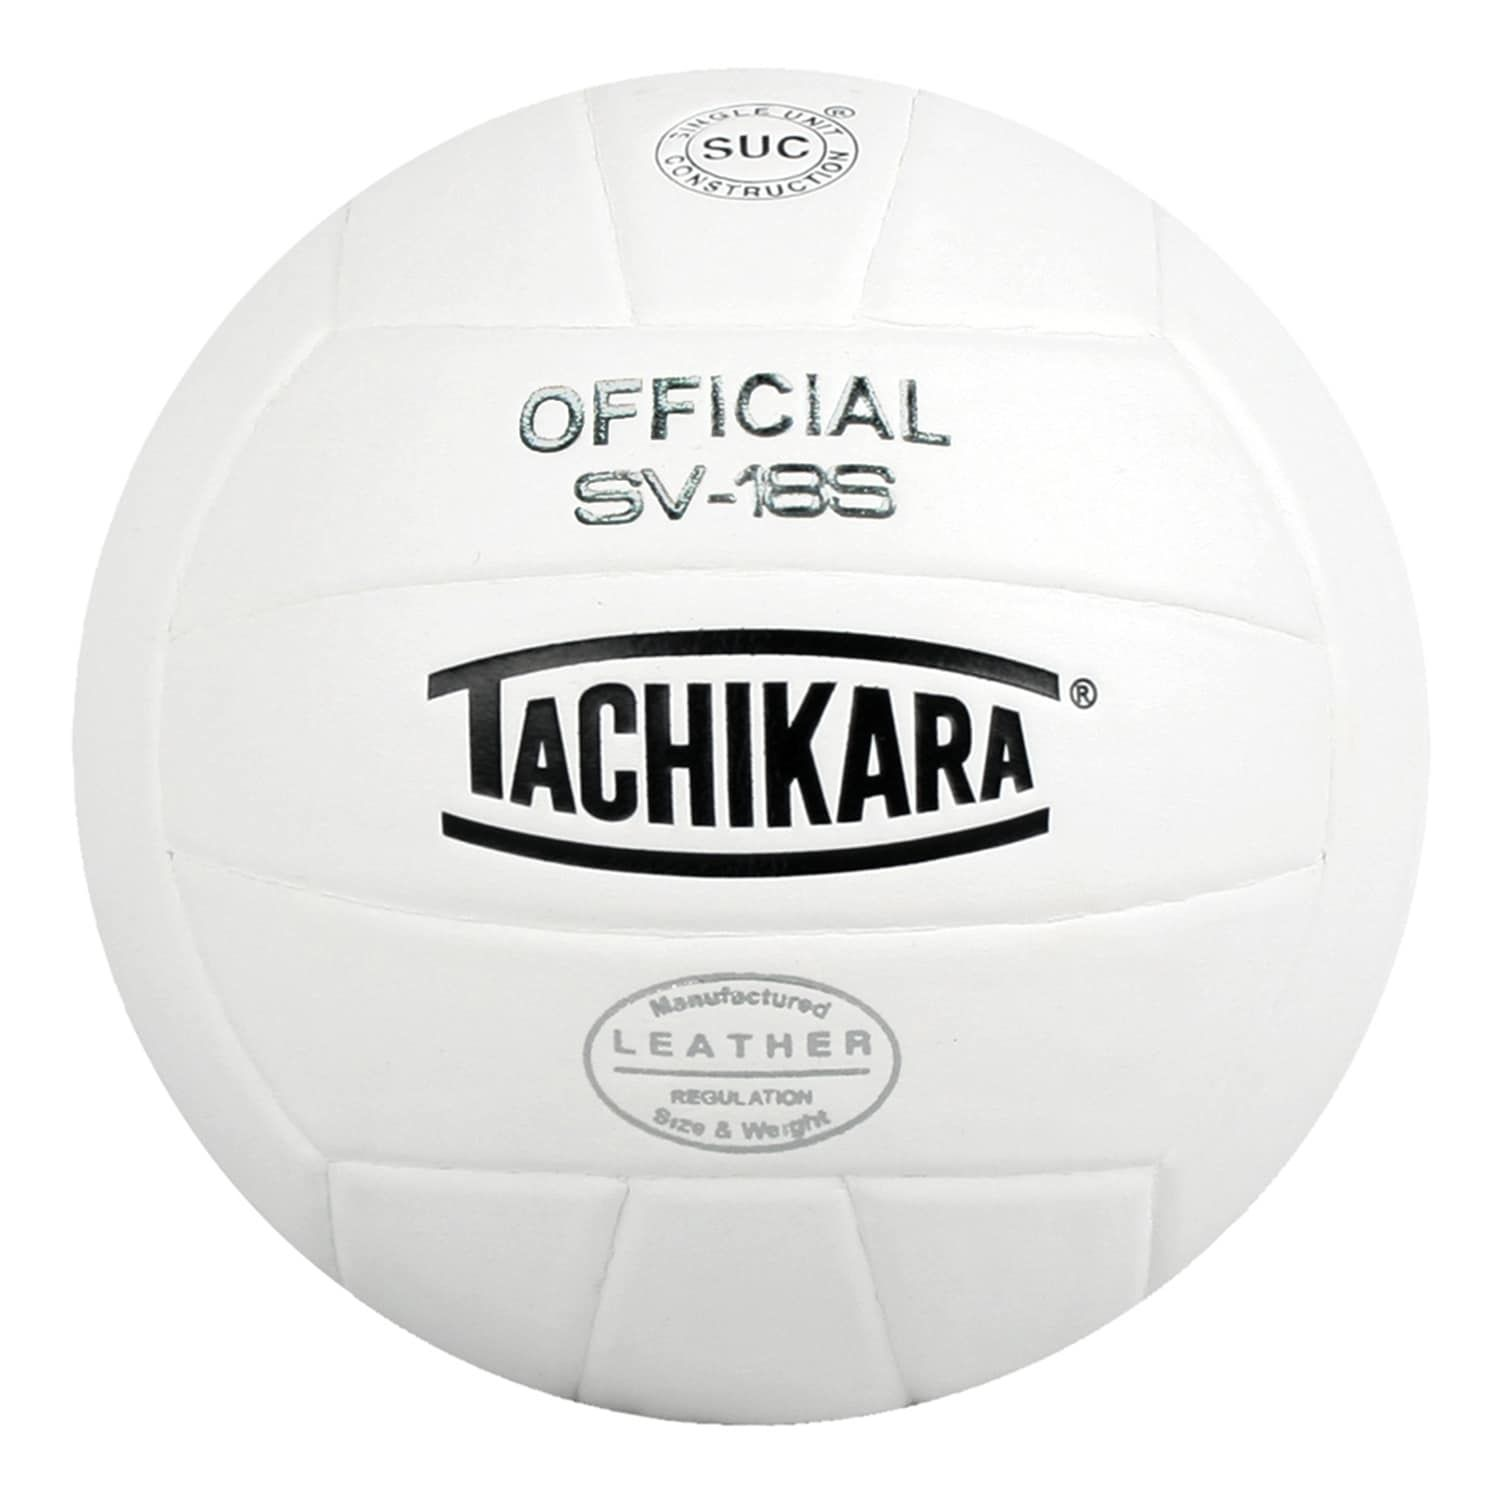 Tachikara Official Sv18s Composite Leather Volleyball Sv18s Official Tachikara Volleyball With Images Indoor Volleyball